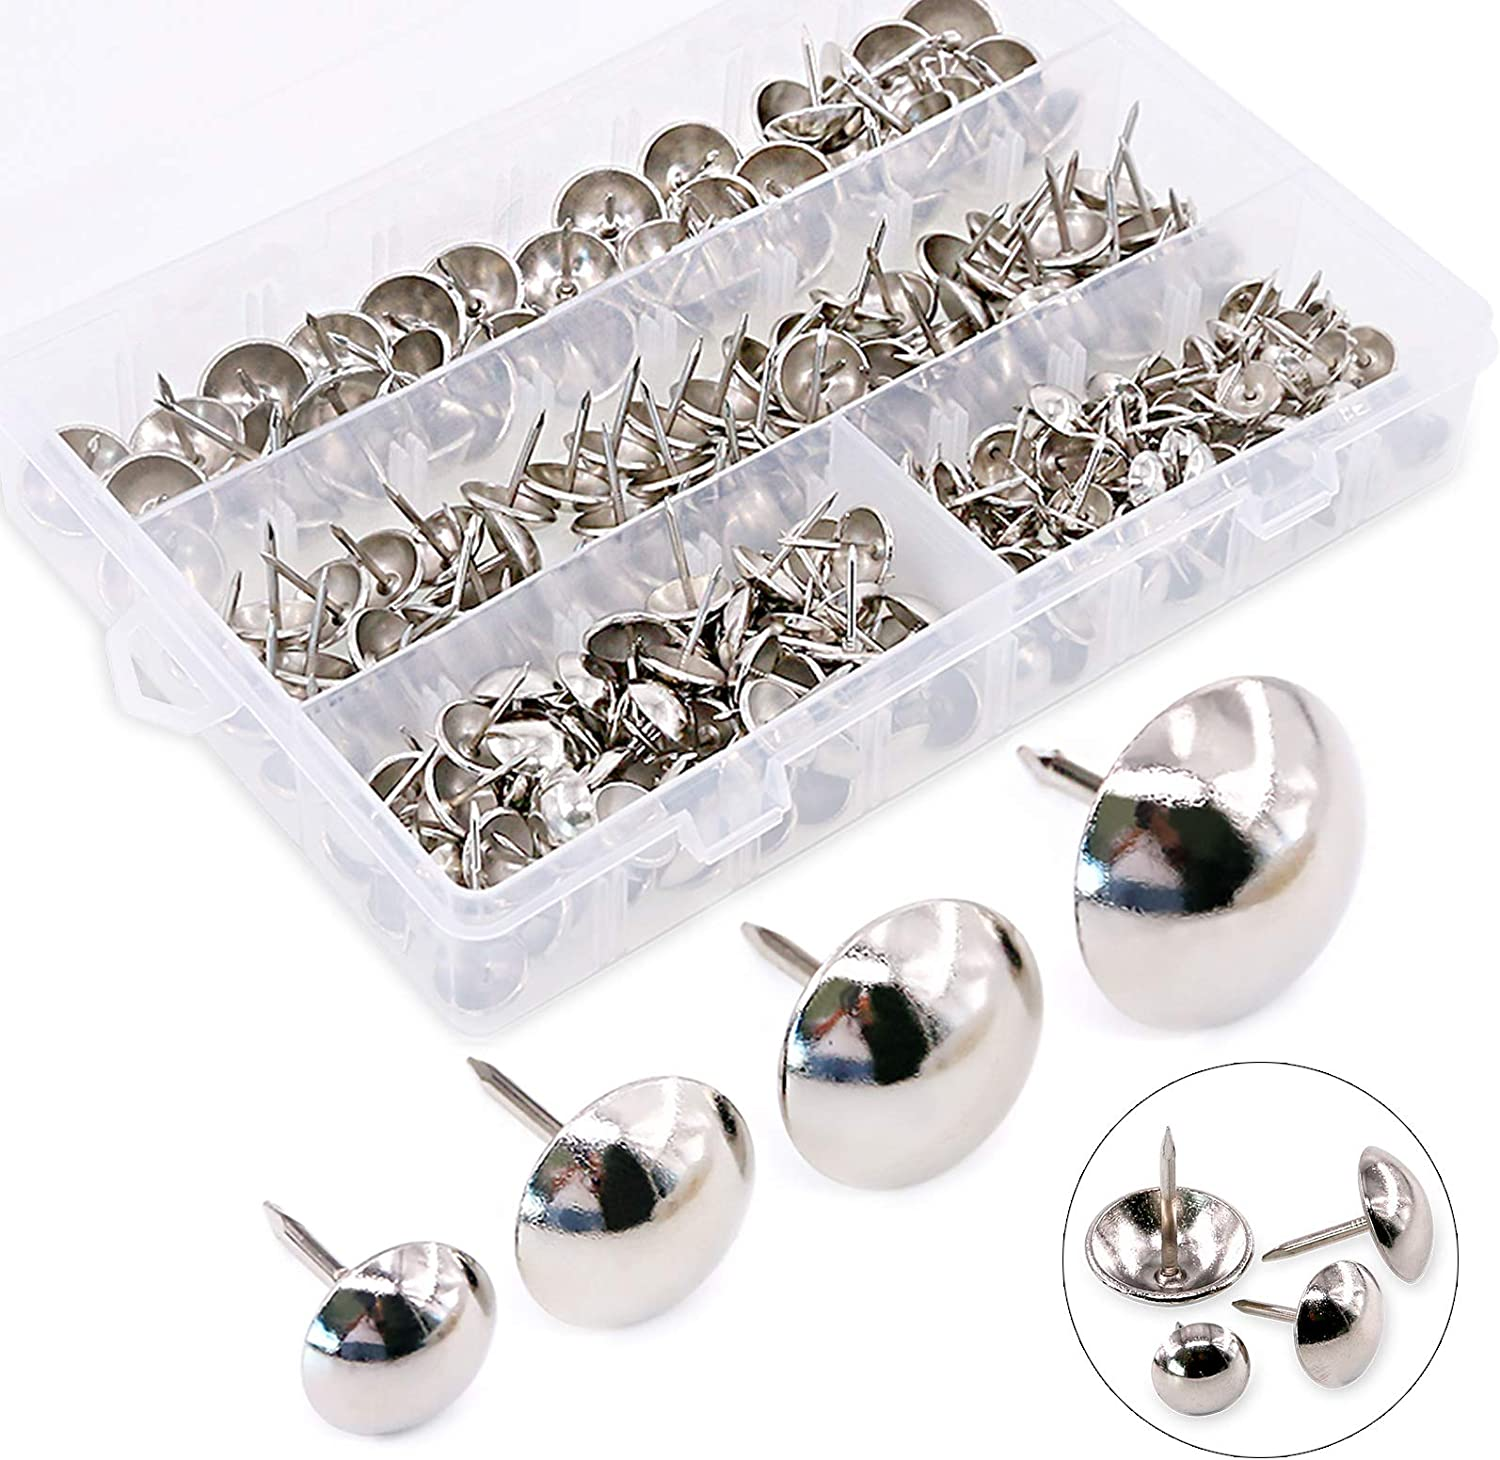 Hilitchi 280-PCS Silver [4-Size] Antique Upholstery Nails Tacks Furniture Tacks Upholstery Tacks Thumb Tack Push Pins Assortment Kit - Size Include: 7/16'' 9/16'' 5/8'' 3/4''